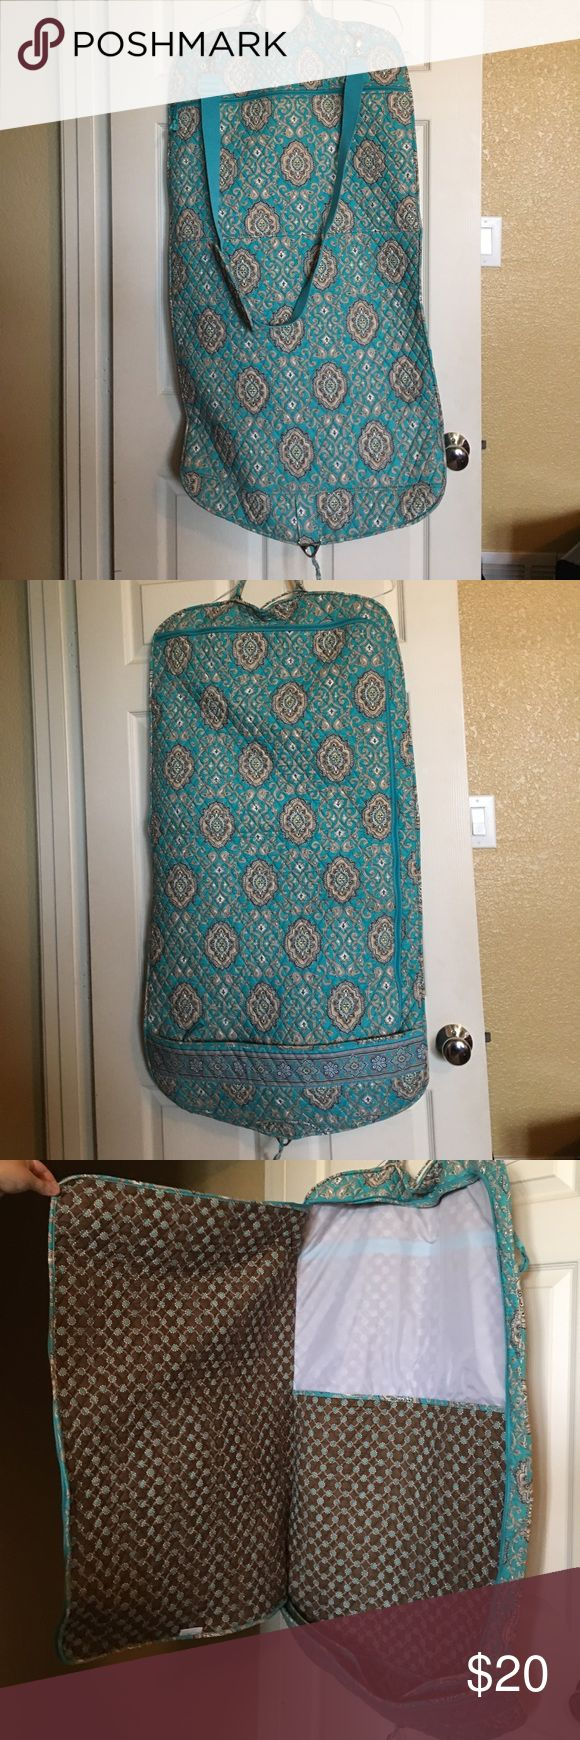 Vera Bradley garment bag Good condition. Latch broken on strap as pictured, but doesn't affect use. Vera Bradley Bags Travel Bags